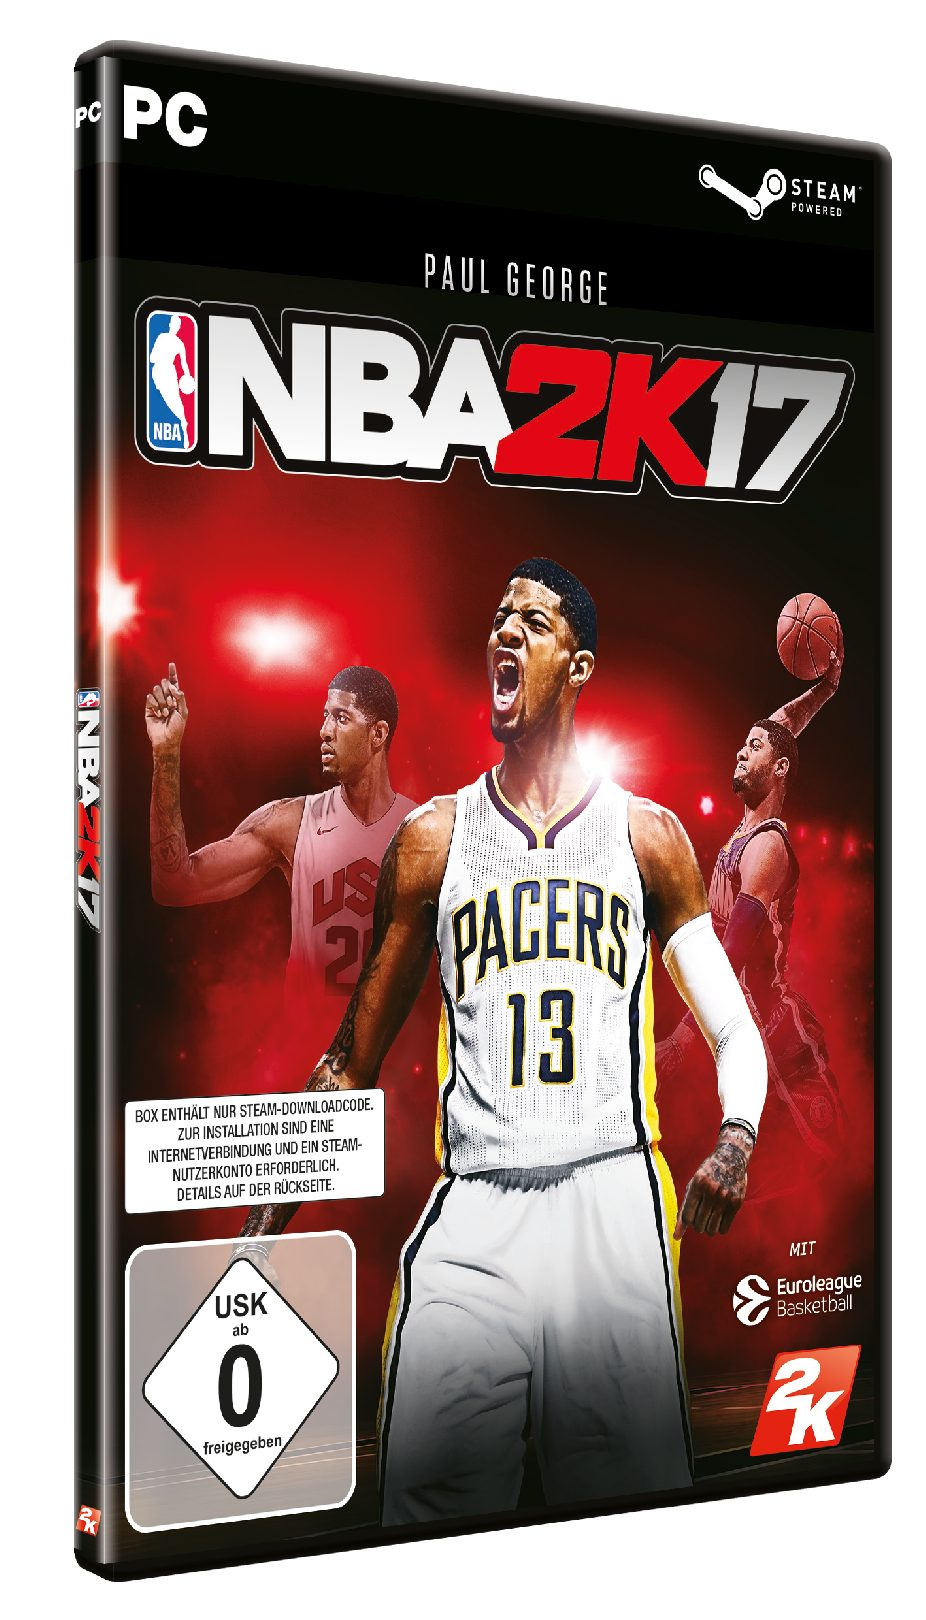 Take 2 NBA 2K17 DayOne Edition (DLC only) »PC«